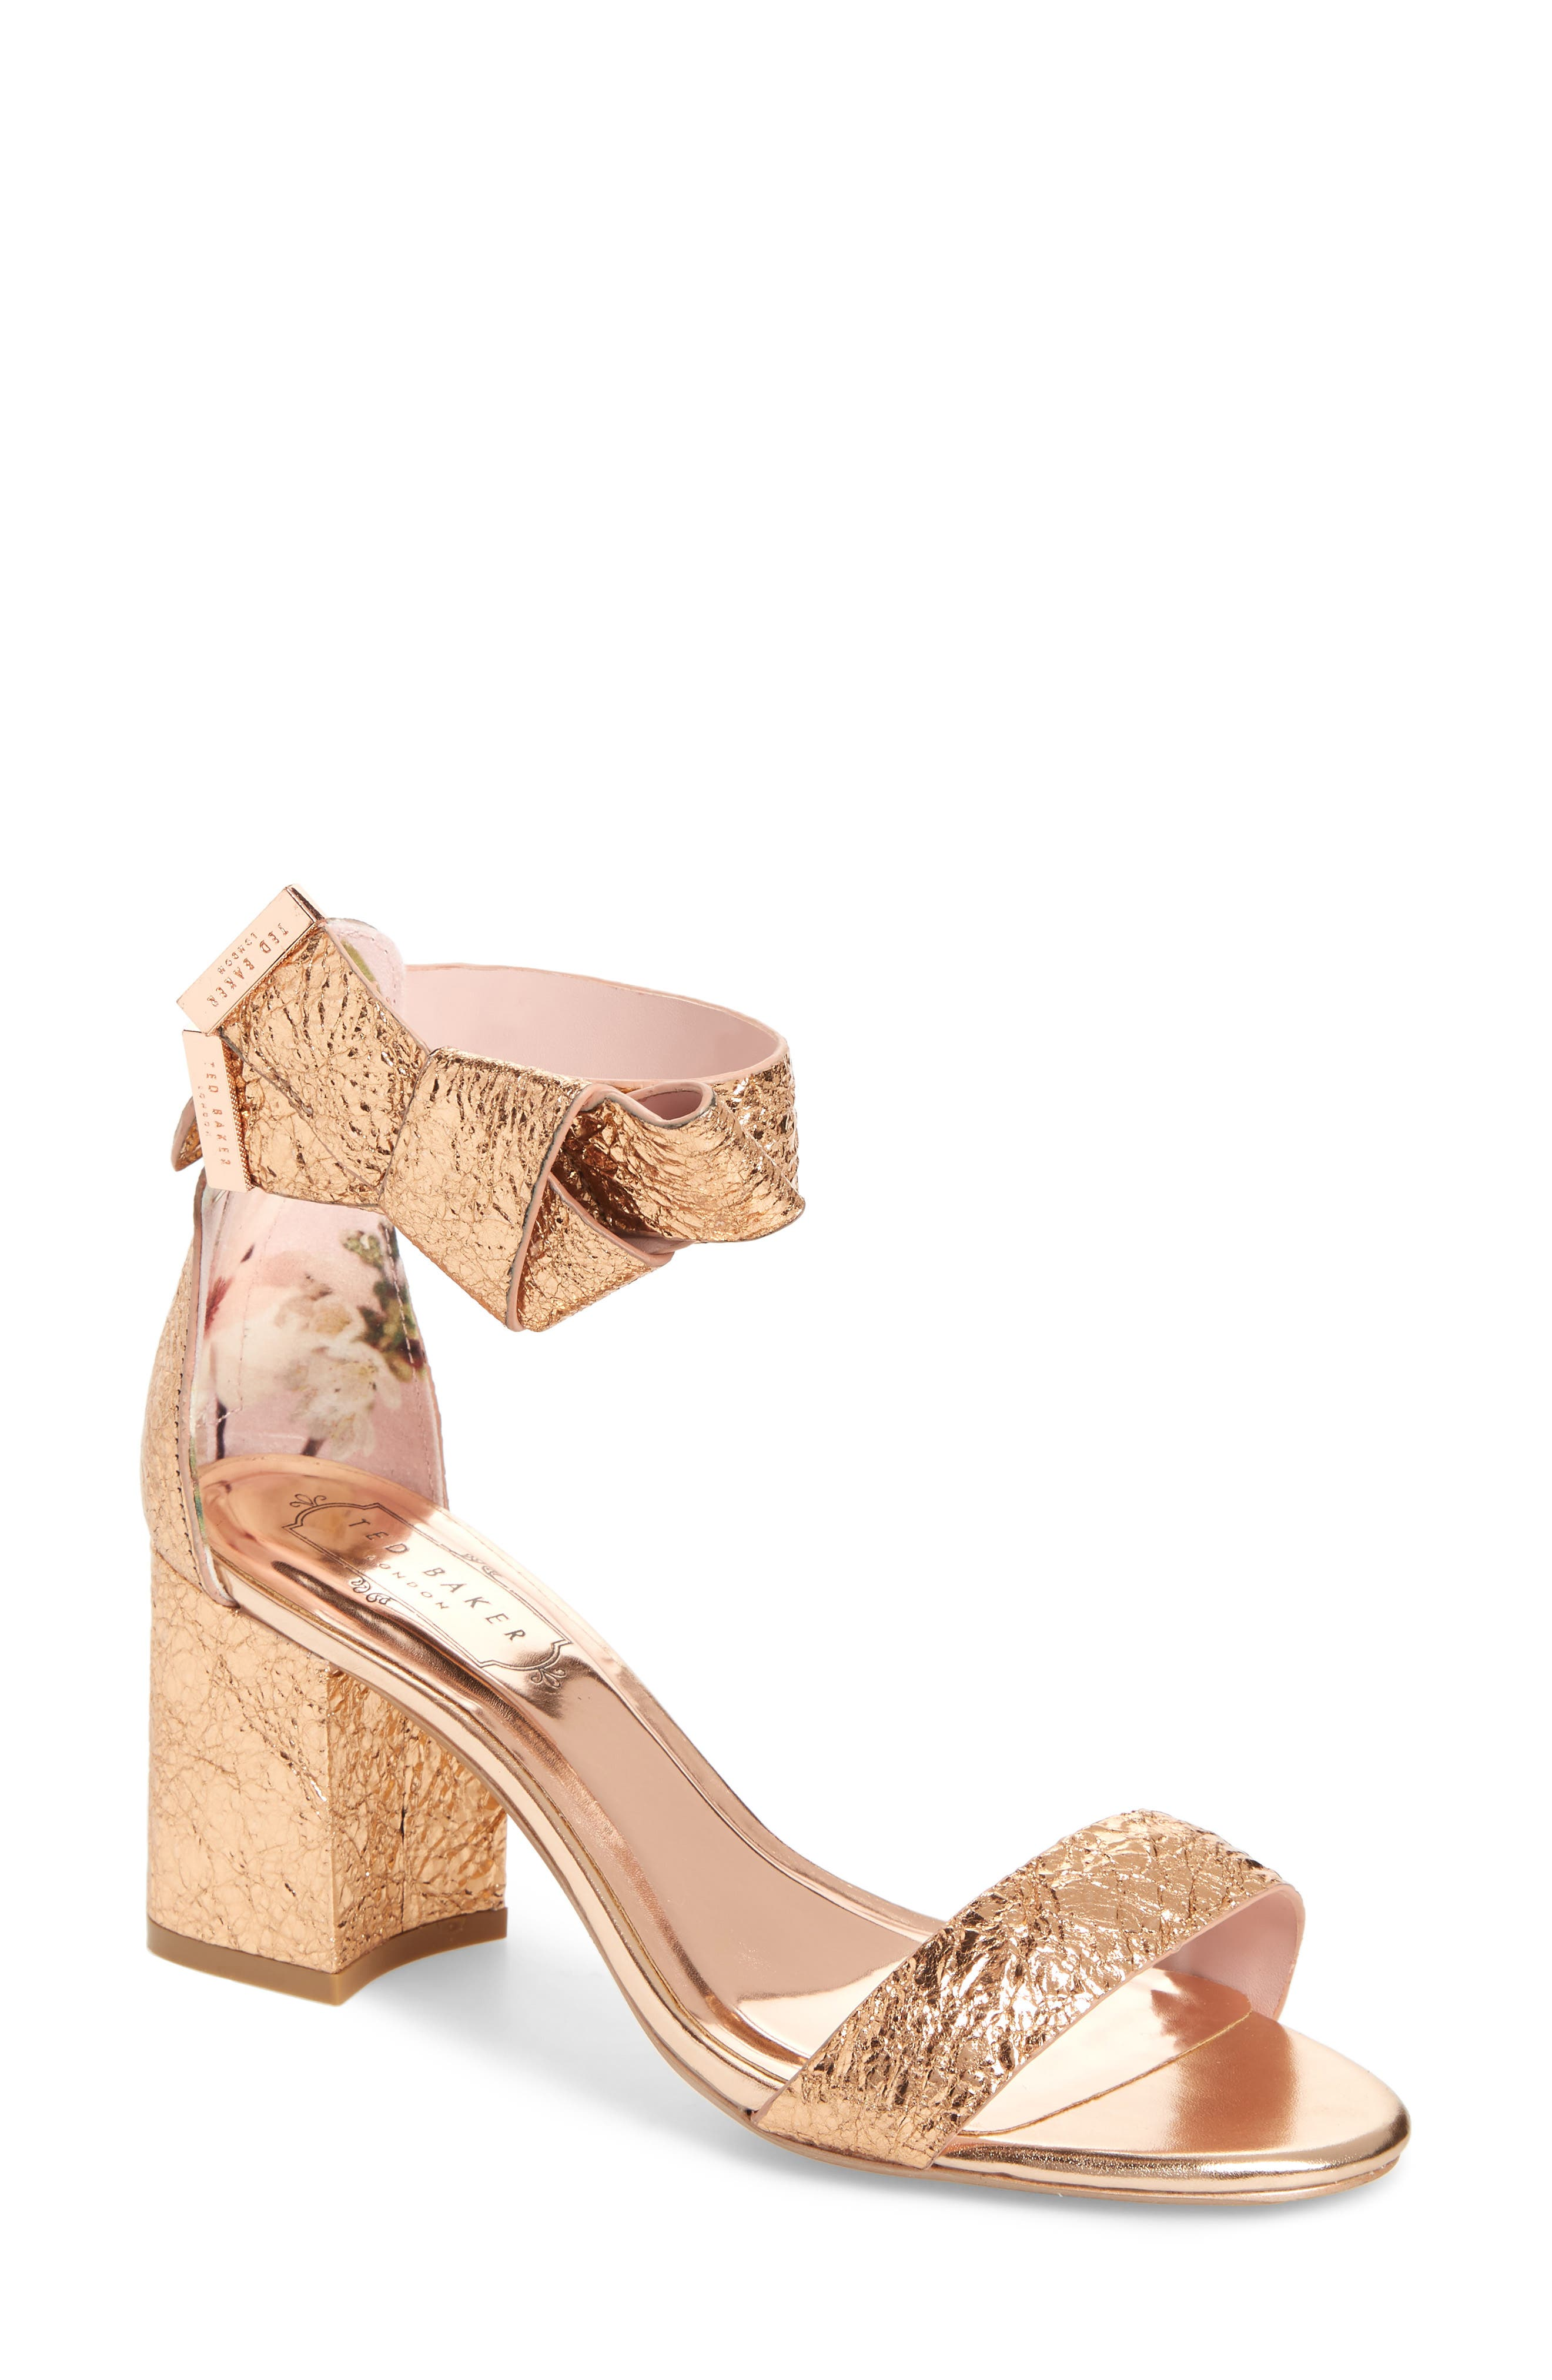 Kerrias Rose Gold Leather Block Heeled Sandal - Rose gold Ted Baker A5XJWAxn